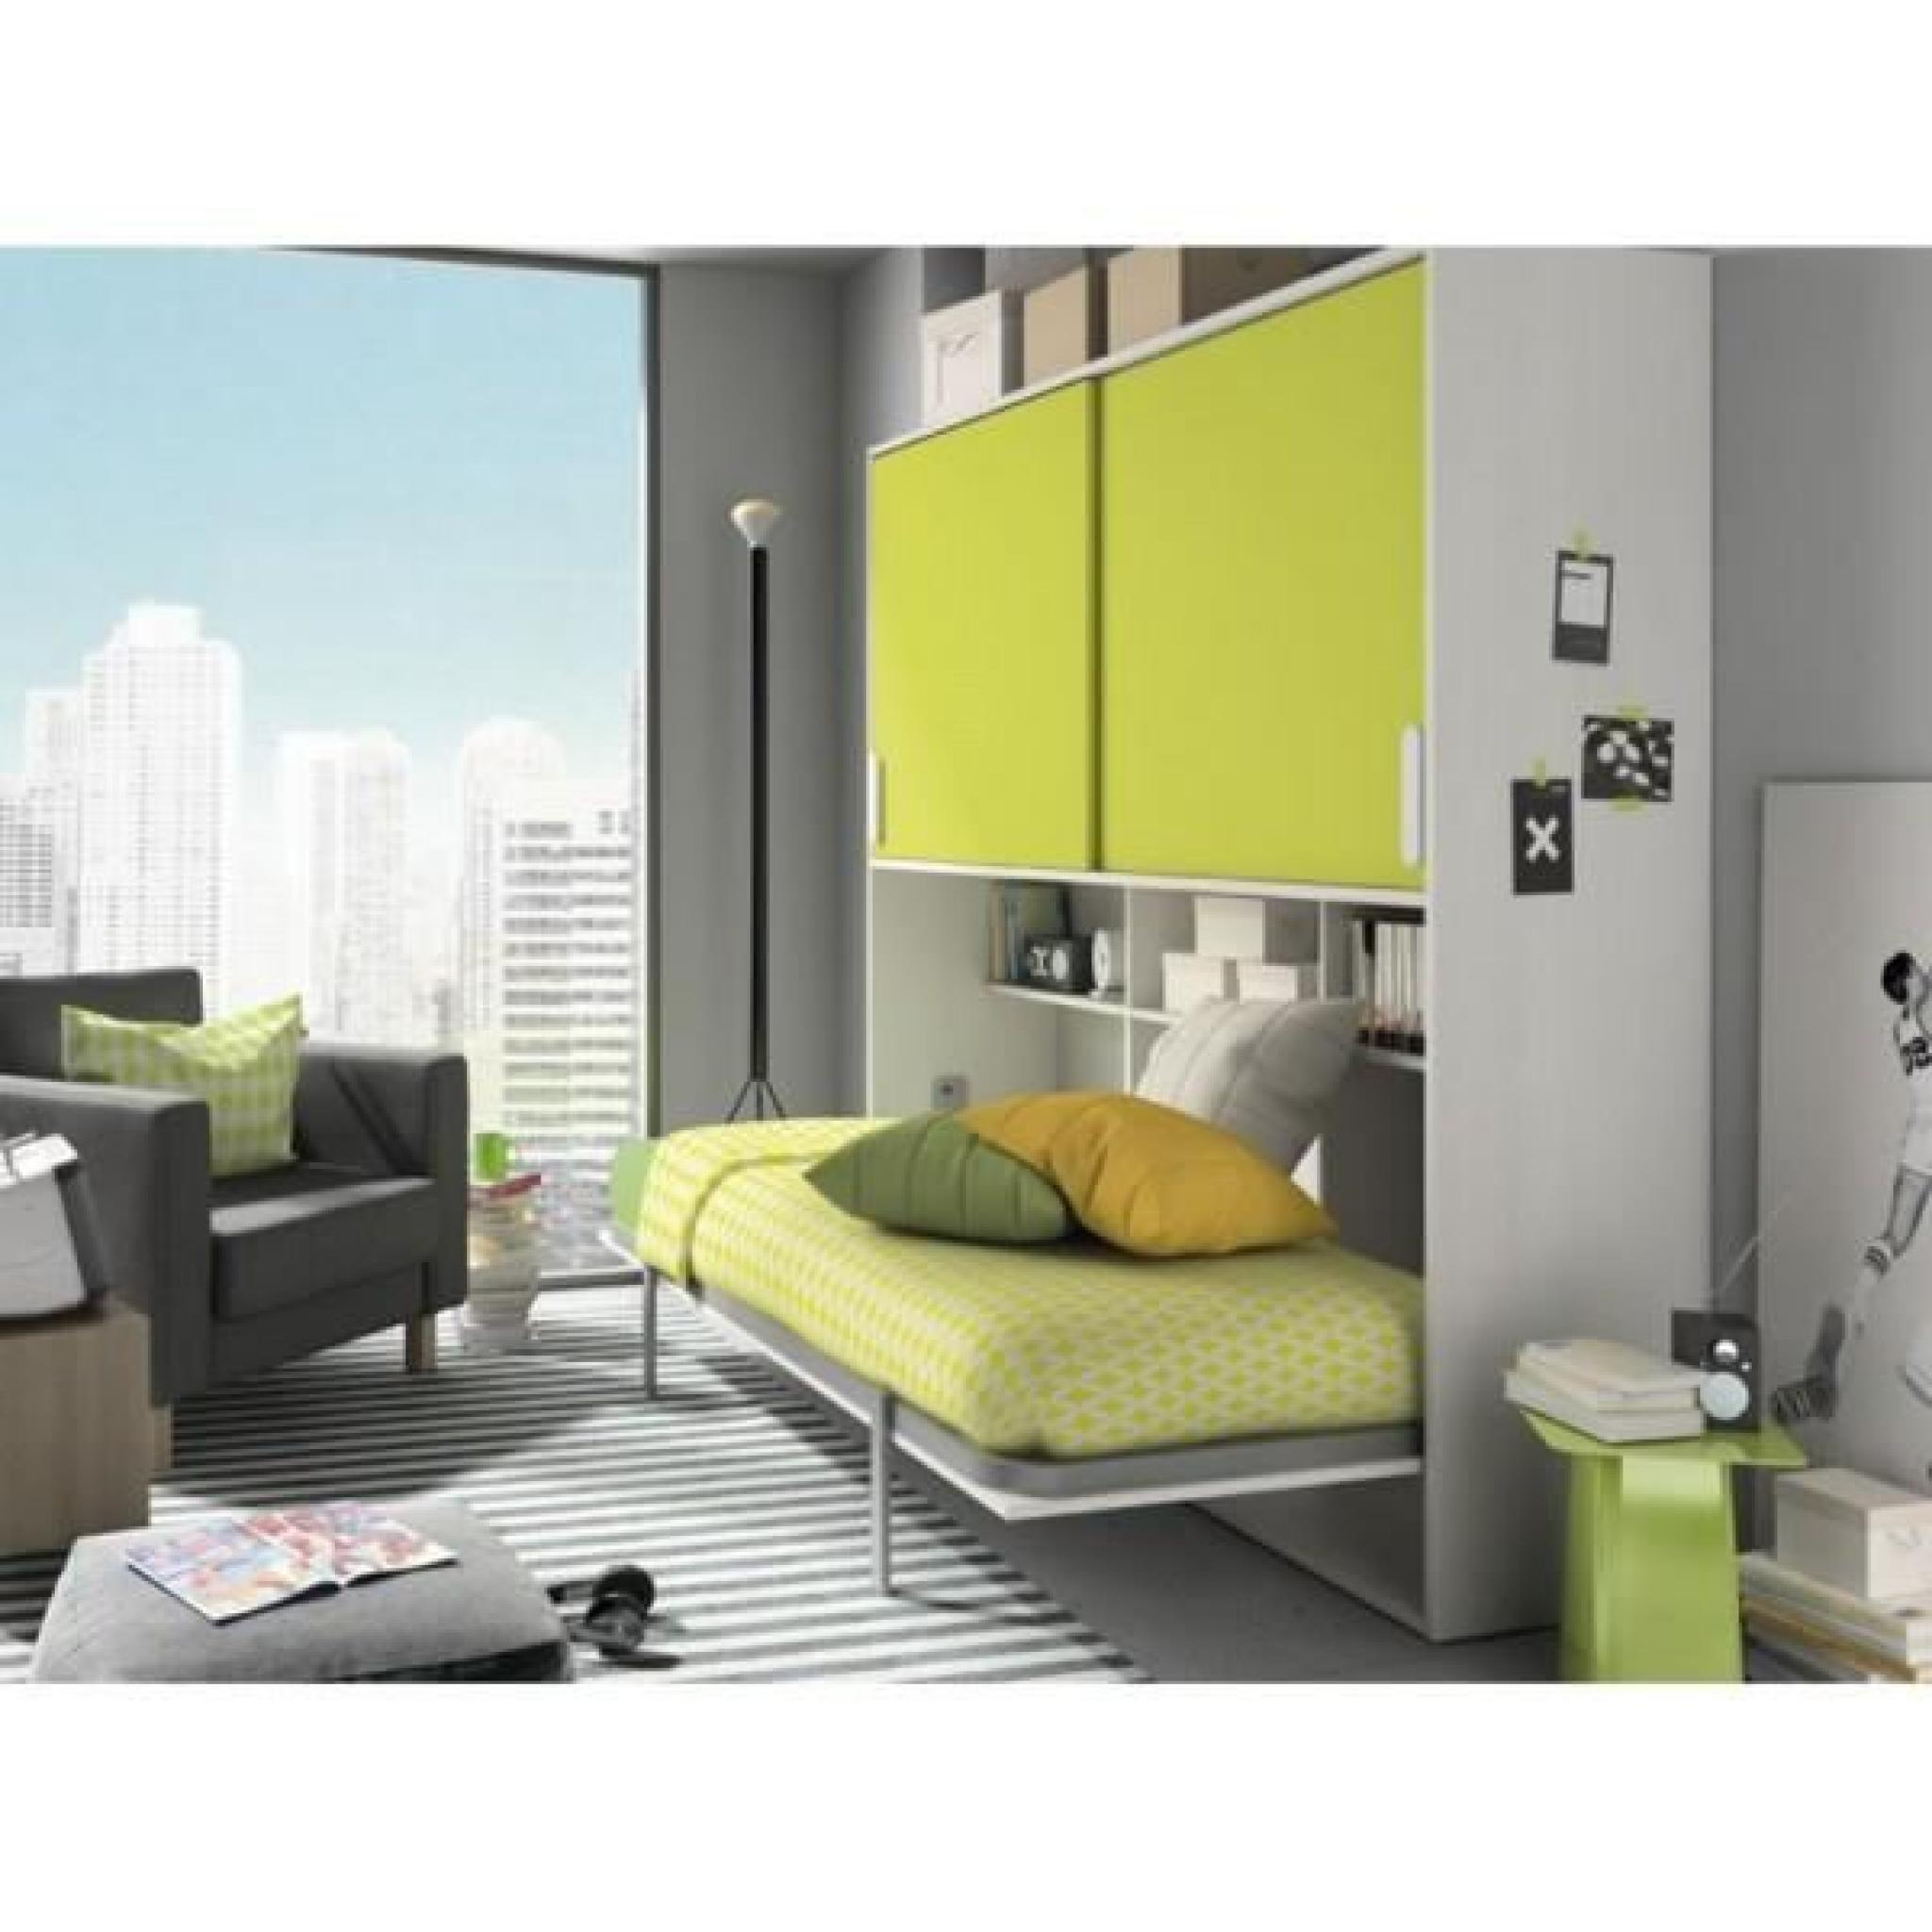 lit escamotable deco 307 achat vente lit escamotable pas cher couleur et. Black Bedroom Furniture Sets. Home Design Ideas